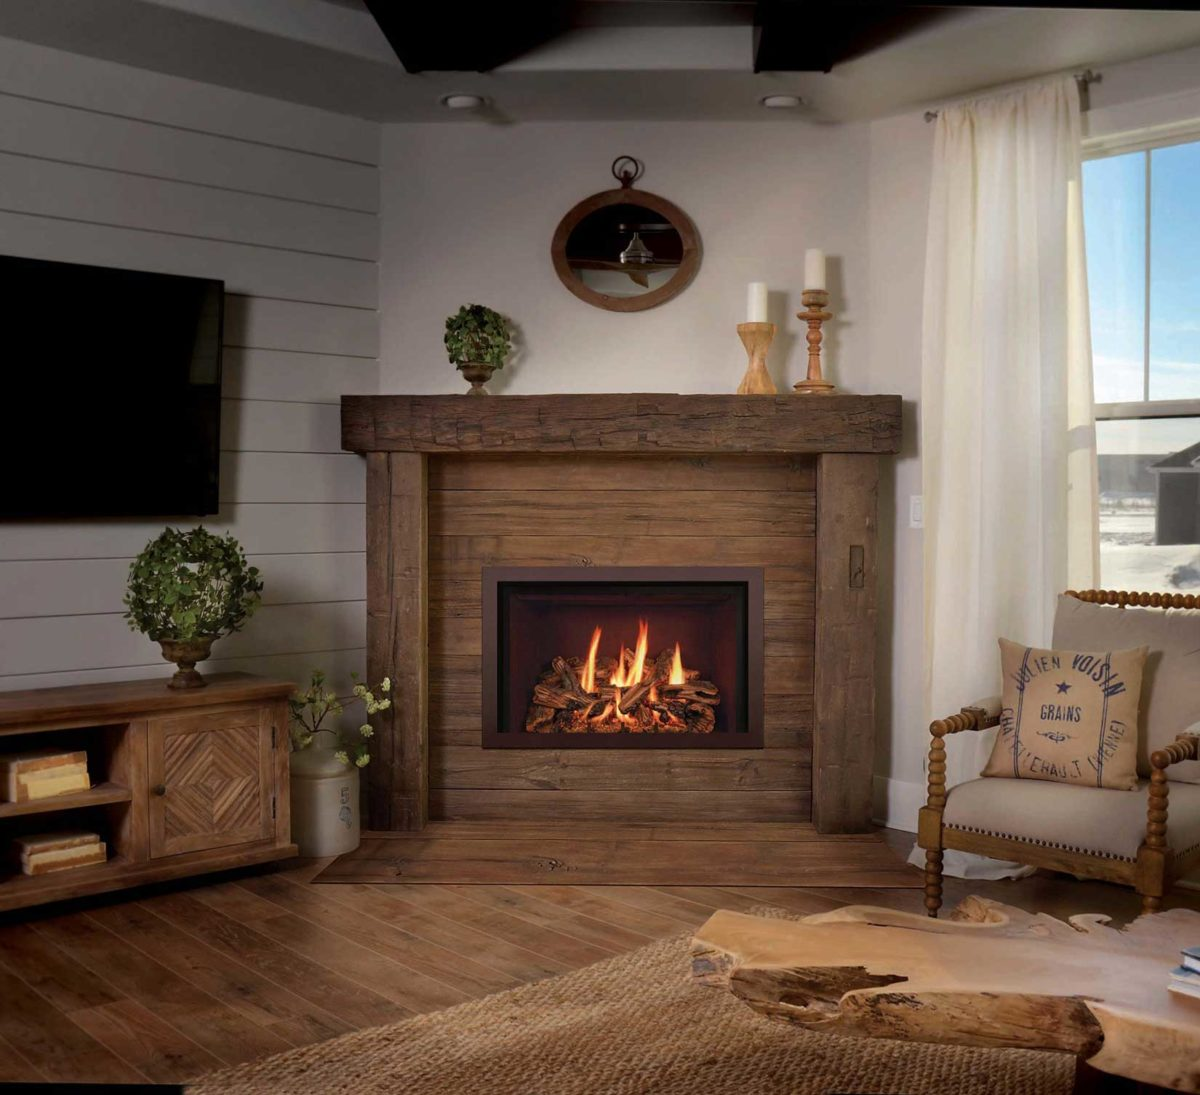 FV36-Fireplace-Modern-Colony-Plumbing-Heating-Air-Conditioning-Cedar-Rapids-Iowa-City